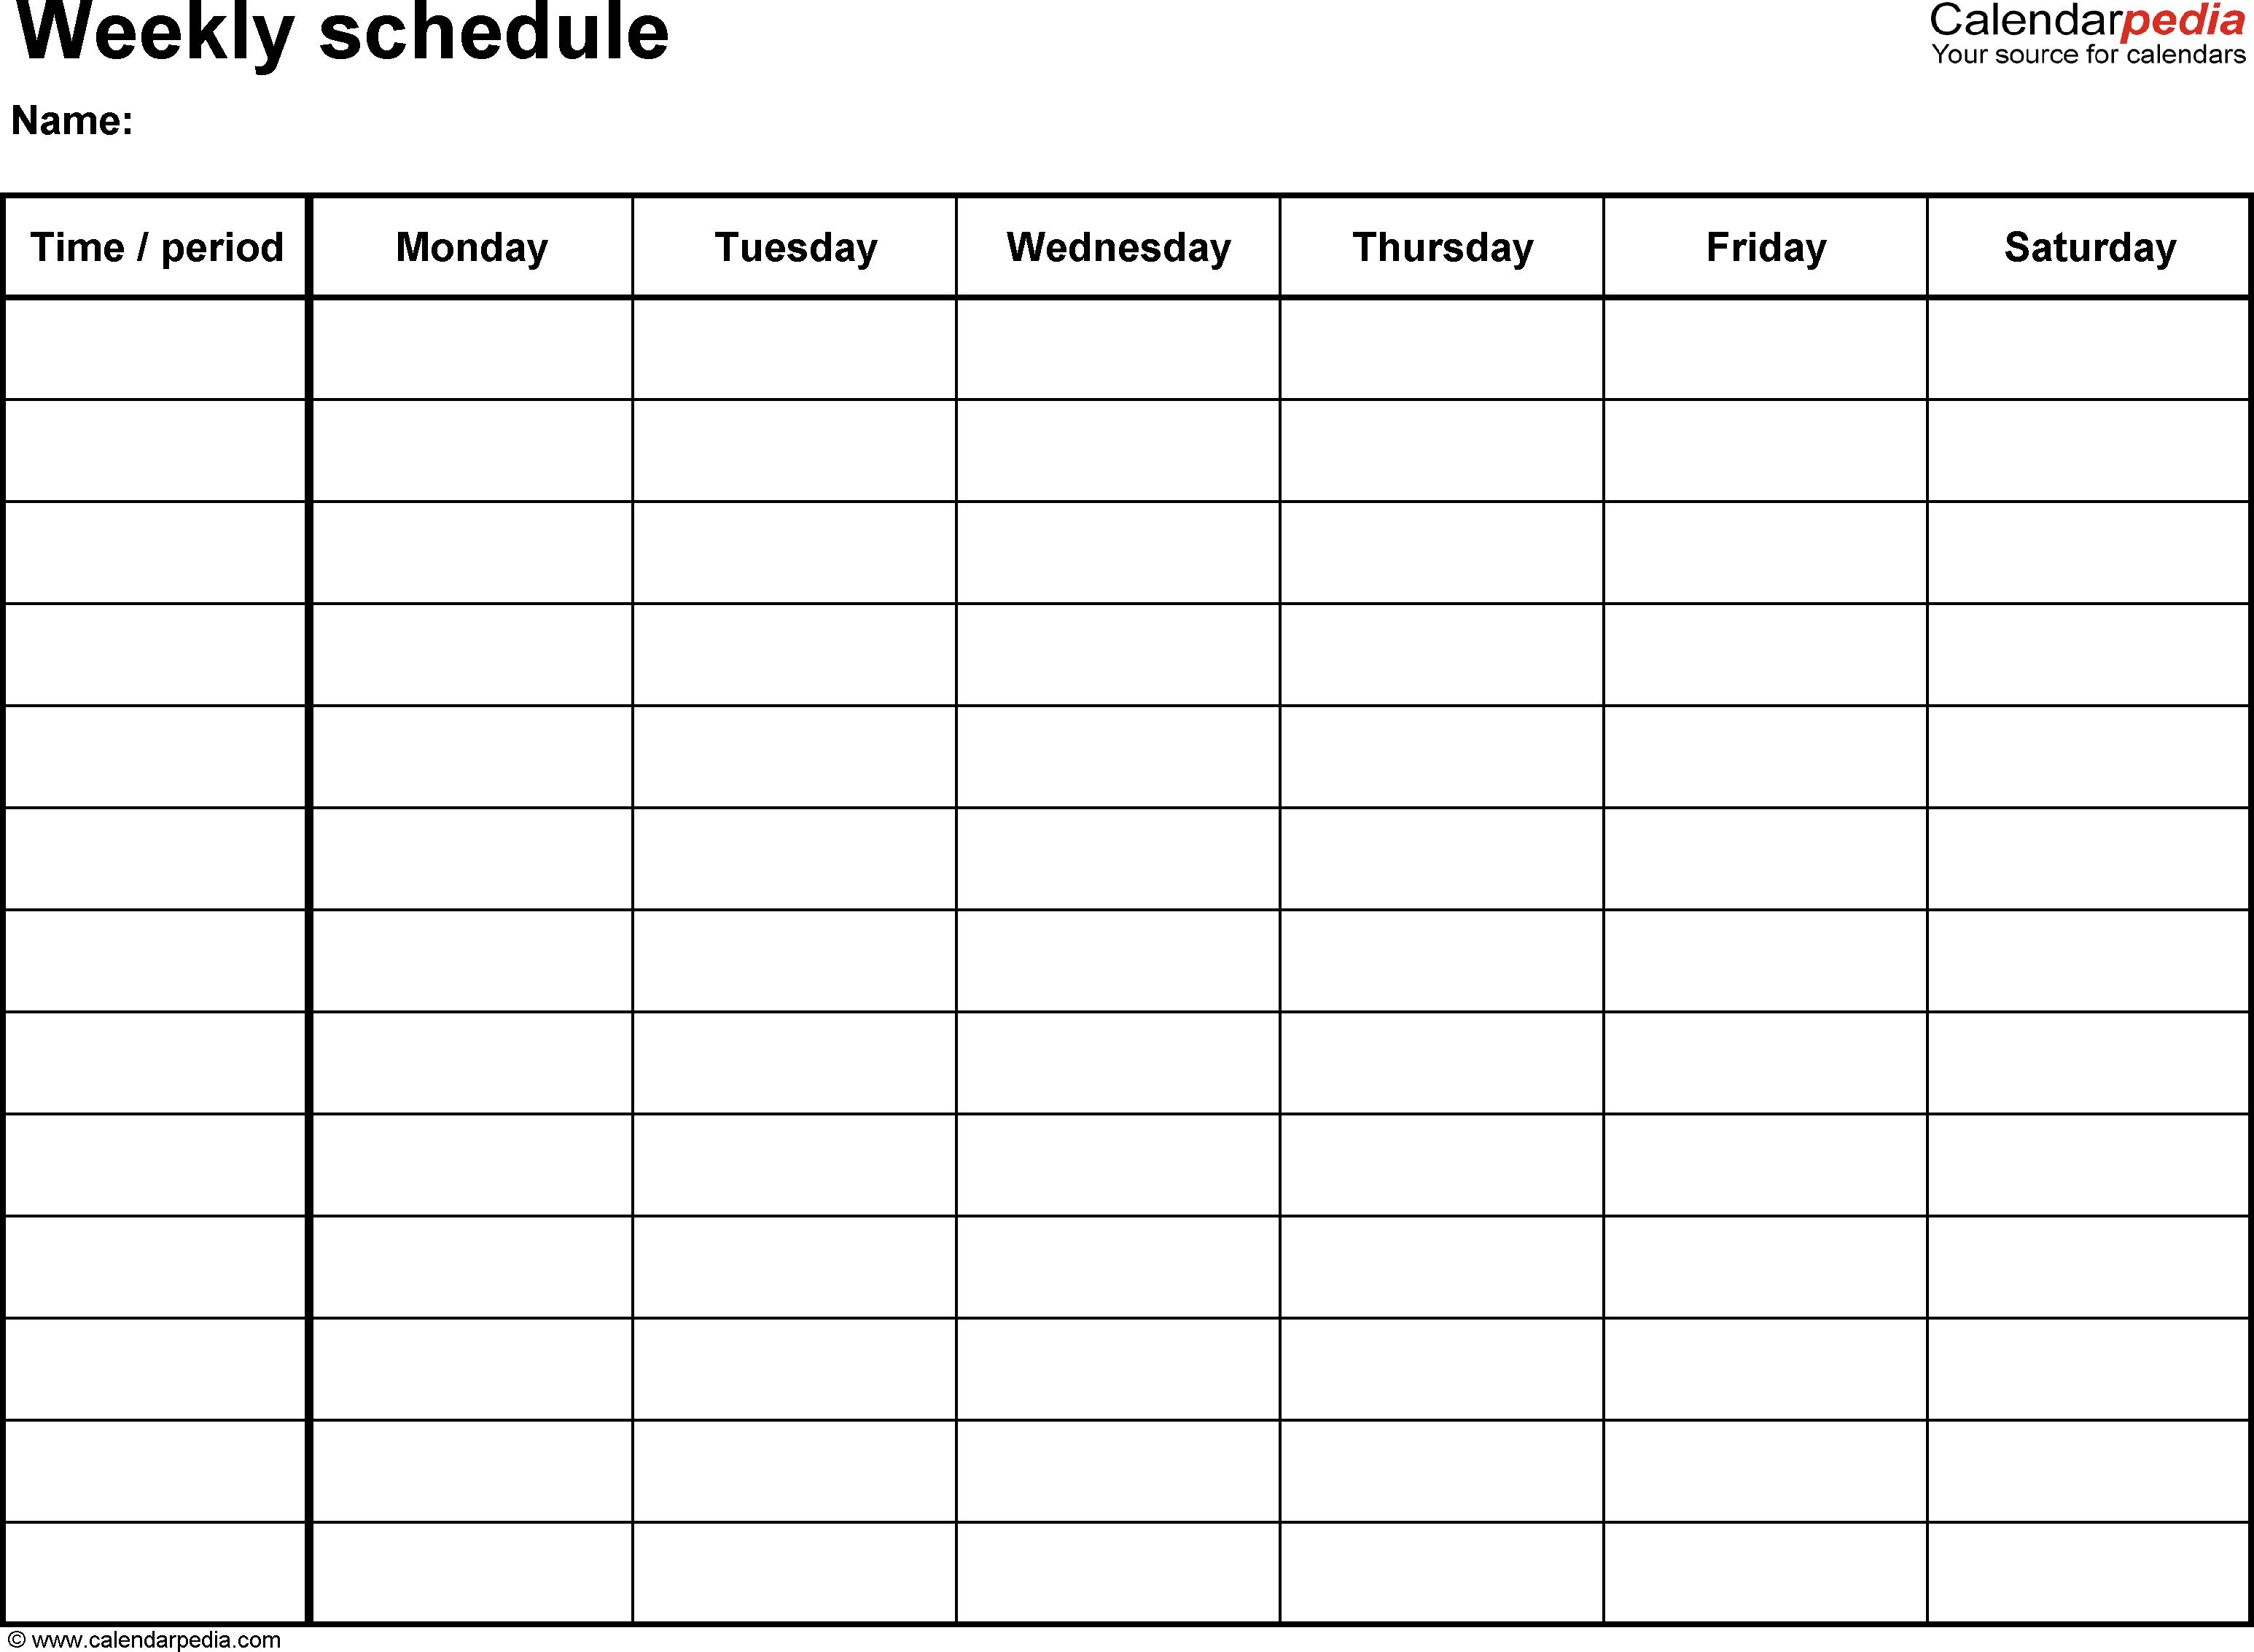 Free Weekly Schedule Templates For Excel - 18 Templates  6 Week Printable Blank Calendar